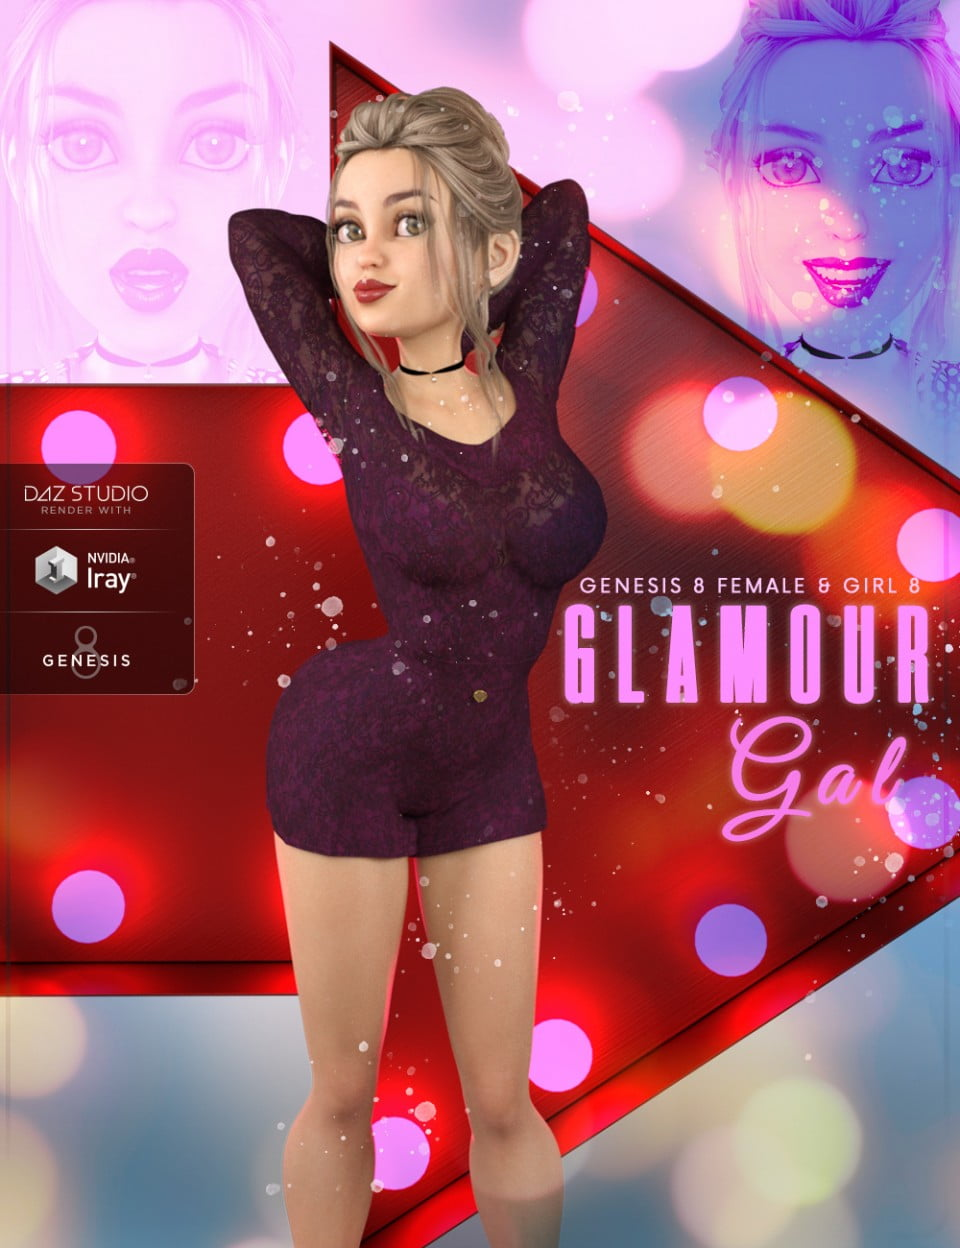 Z Glamour Gal - Poses and Expressions for The Girl 8 and Genesis 8 Female - poses, daz-poser-carrara